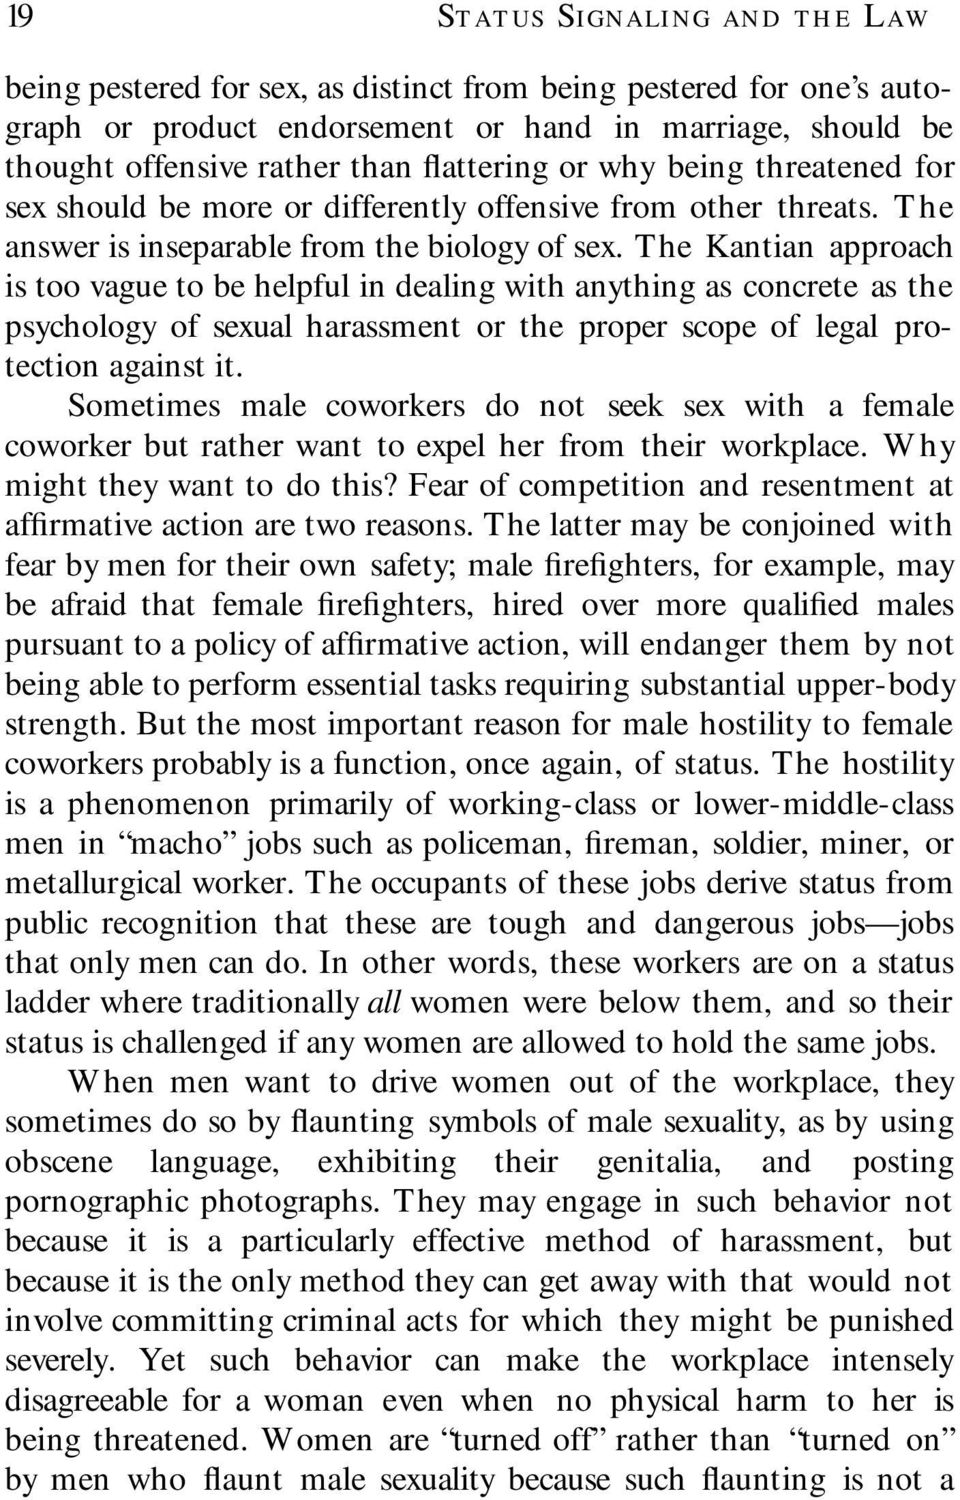 The Kantian approach is too vague to be helpful in dealing with anything as concrete as the psychology of sexual harassment or the proper scope of legal protection against it.